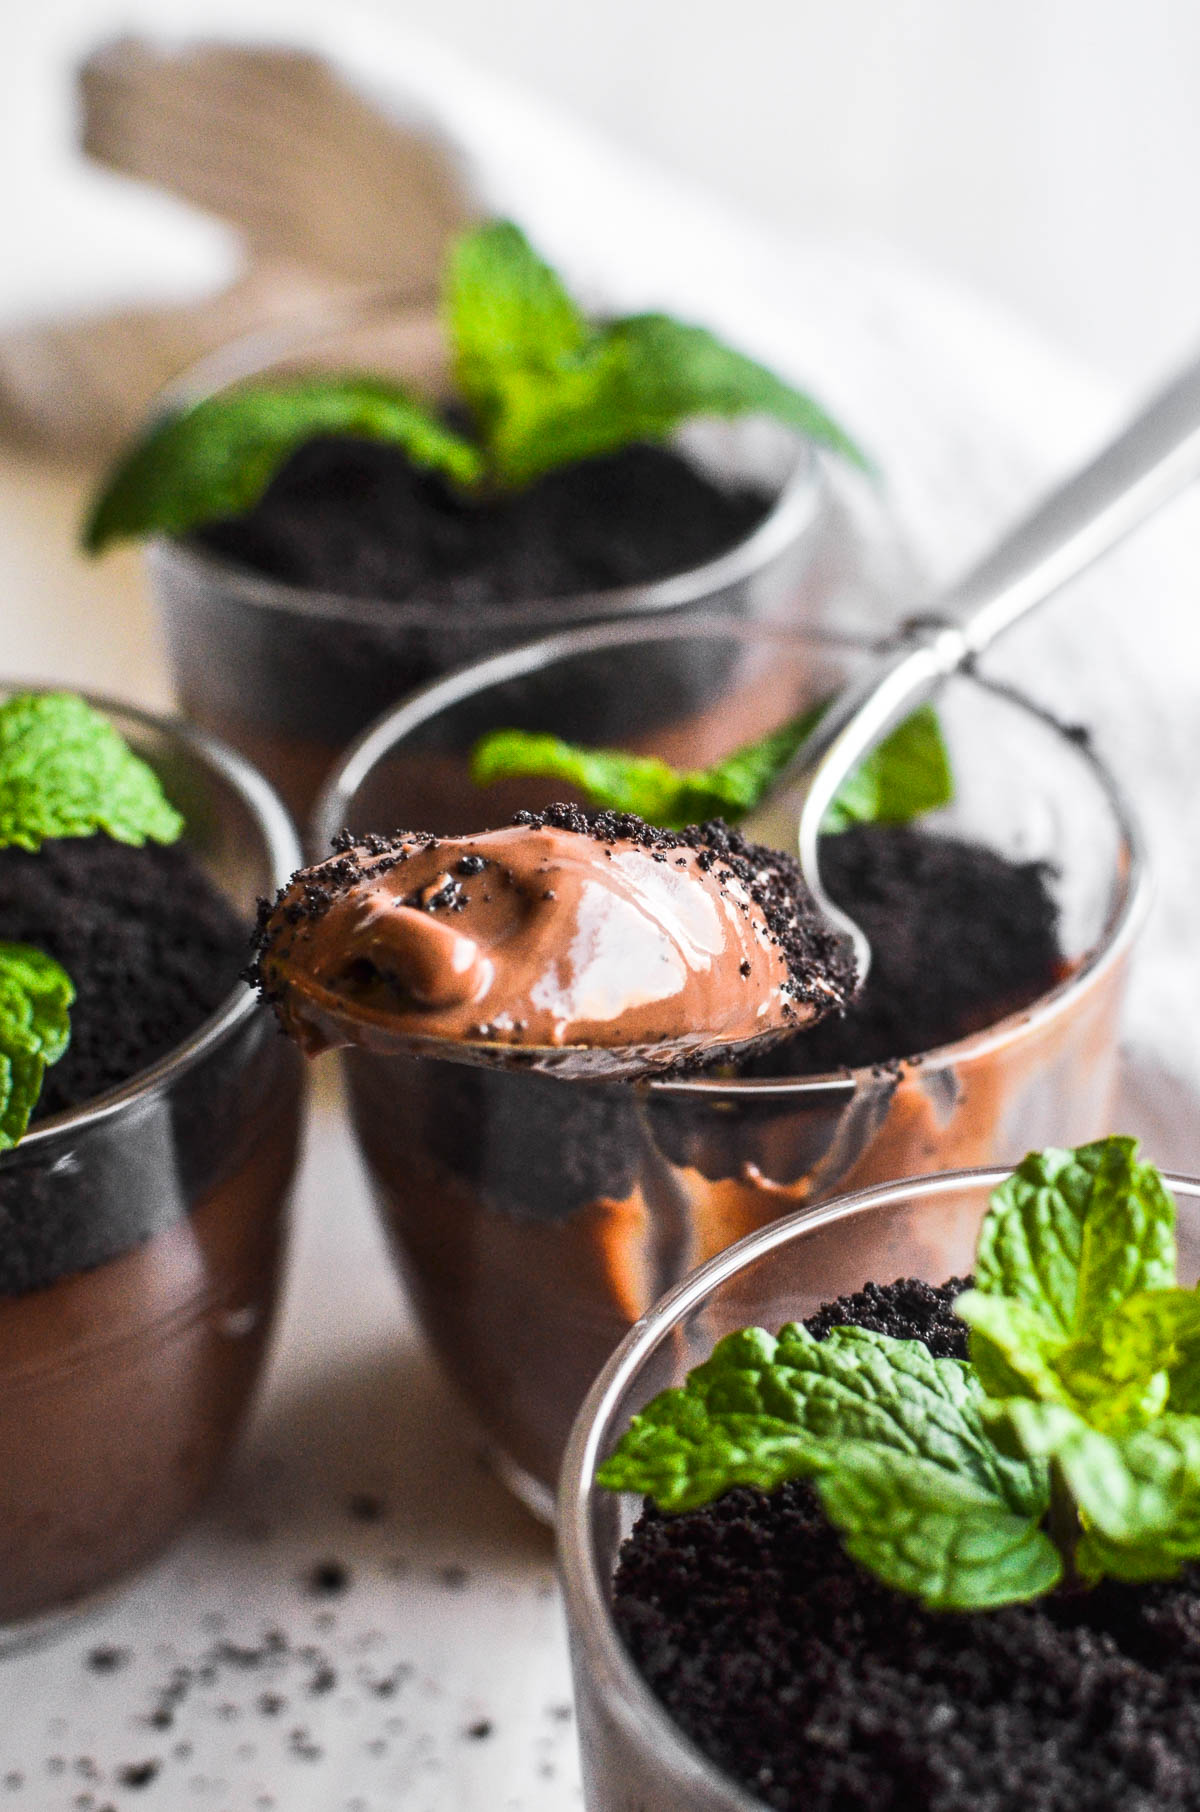 A spoonful of mint chocolate pudding with crushed wafer topping and mint sprigs.